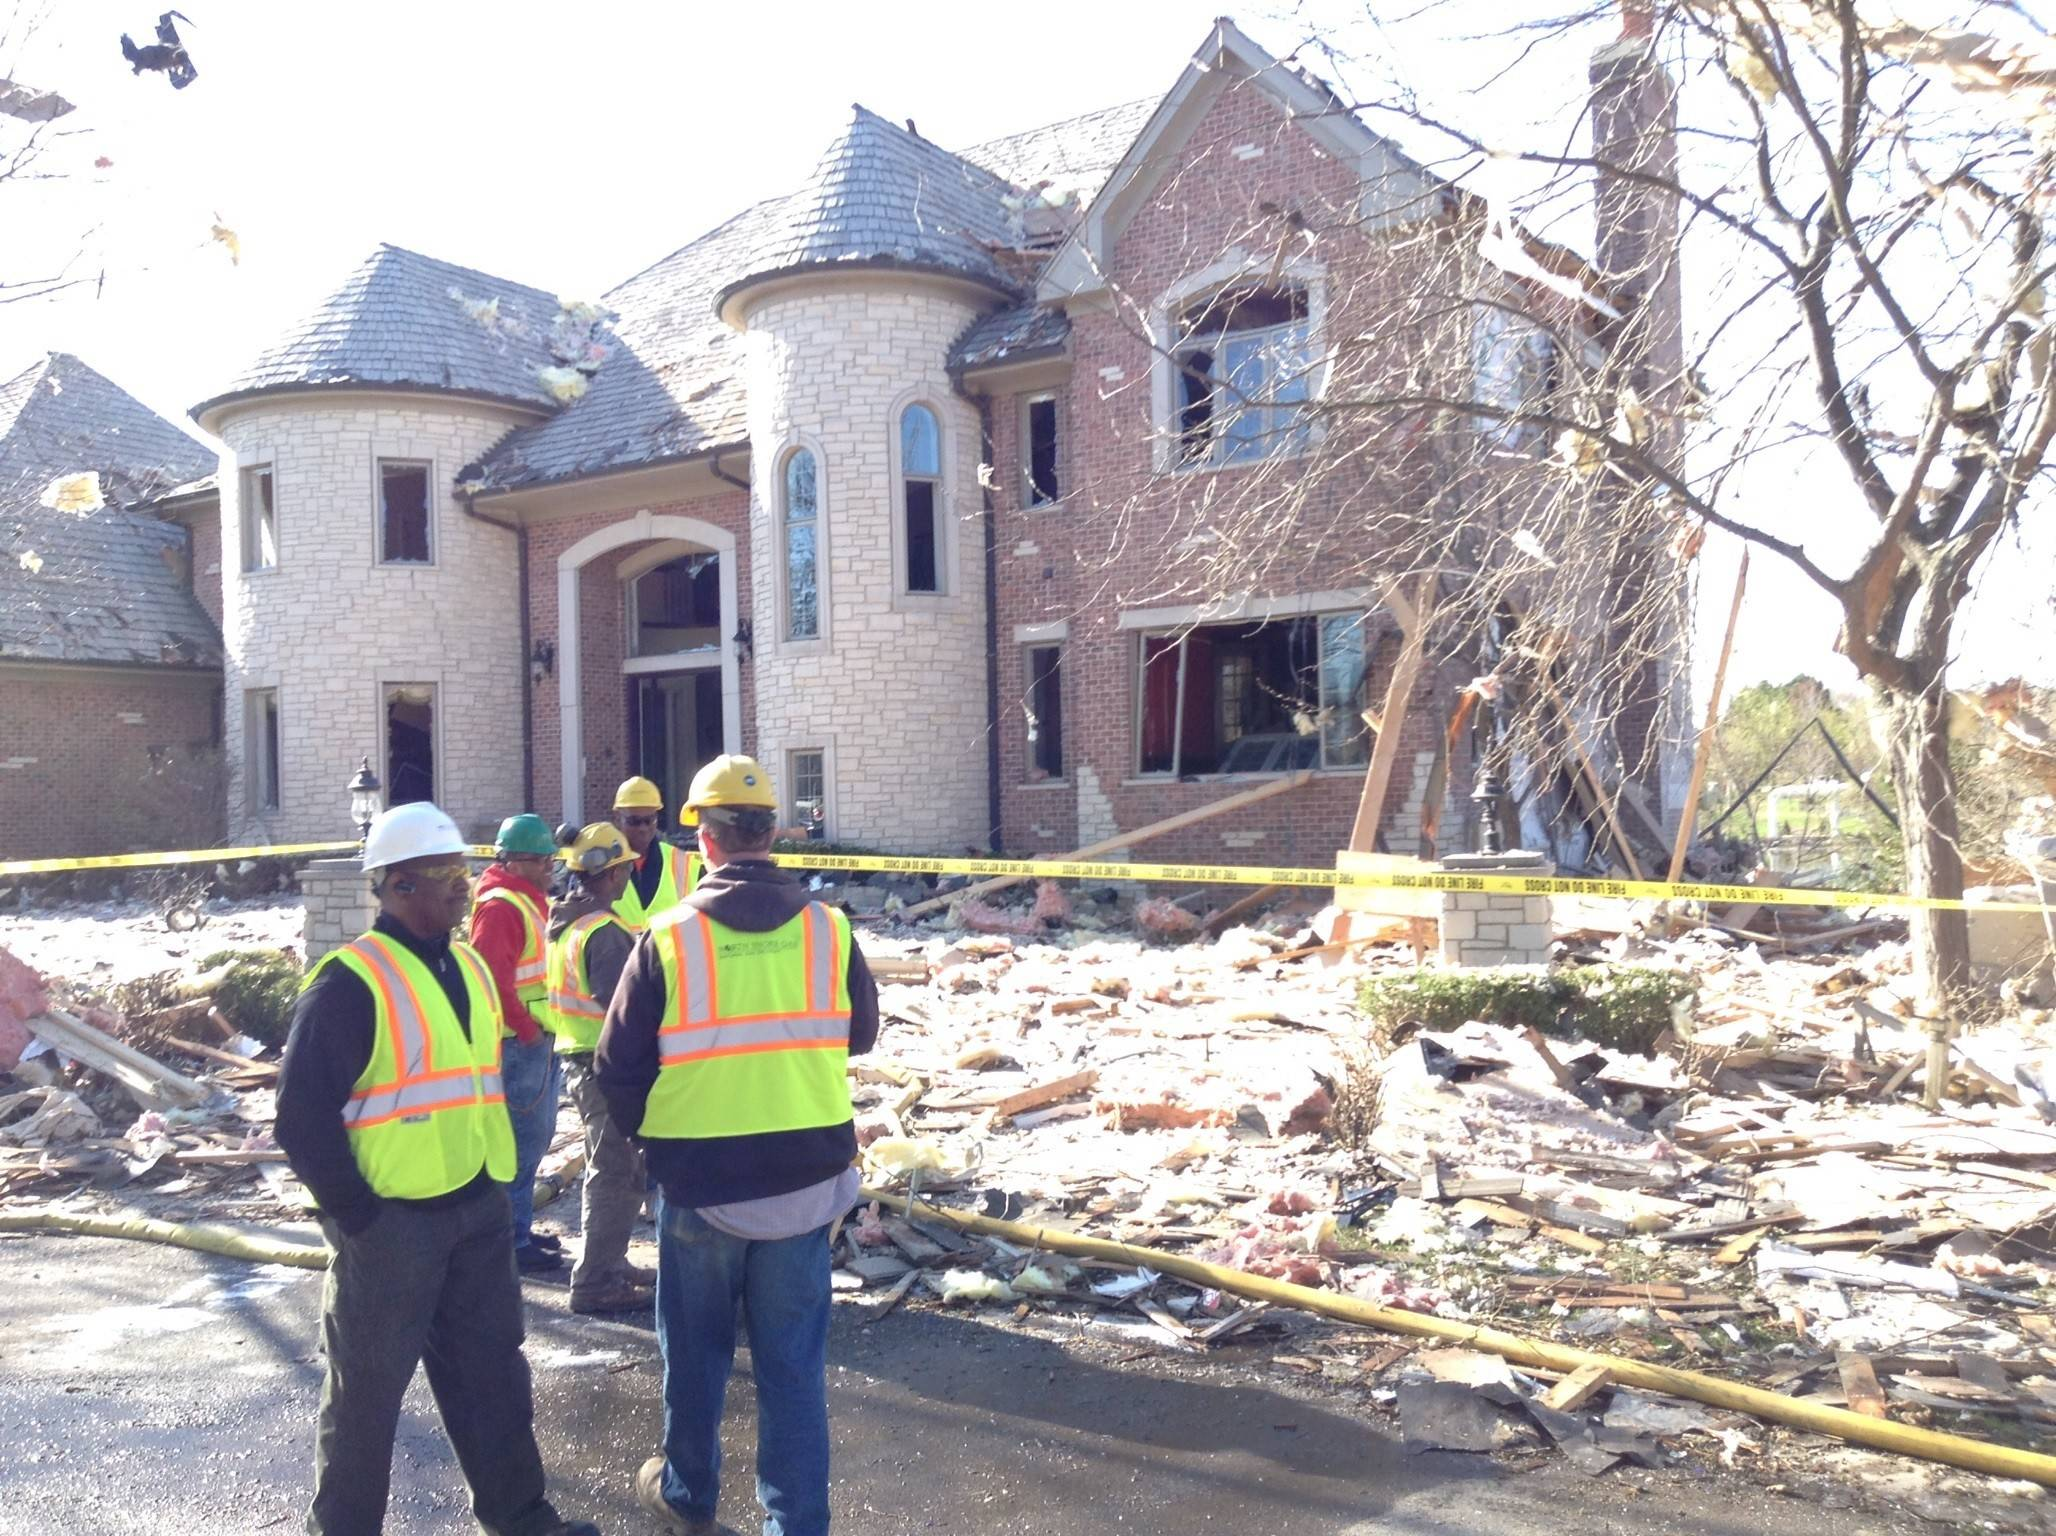 Crews of all kinds were on Trenton Court in Long Grove's Royal Melbourne subdivision Saturday handling the aftermath of a house explosion authorities believe was sparked by natural gas. This house is next to the one that was leveled by the explosion. No serious injuries were reported.